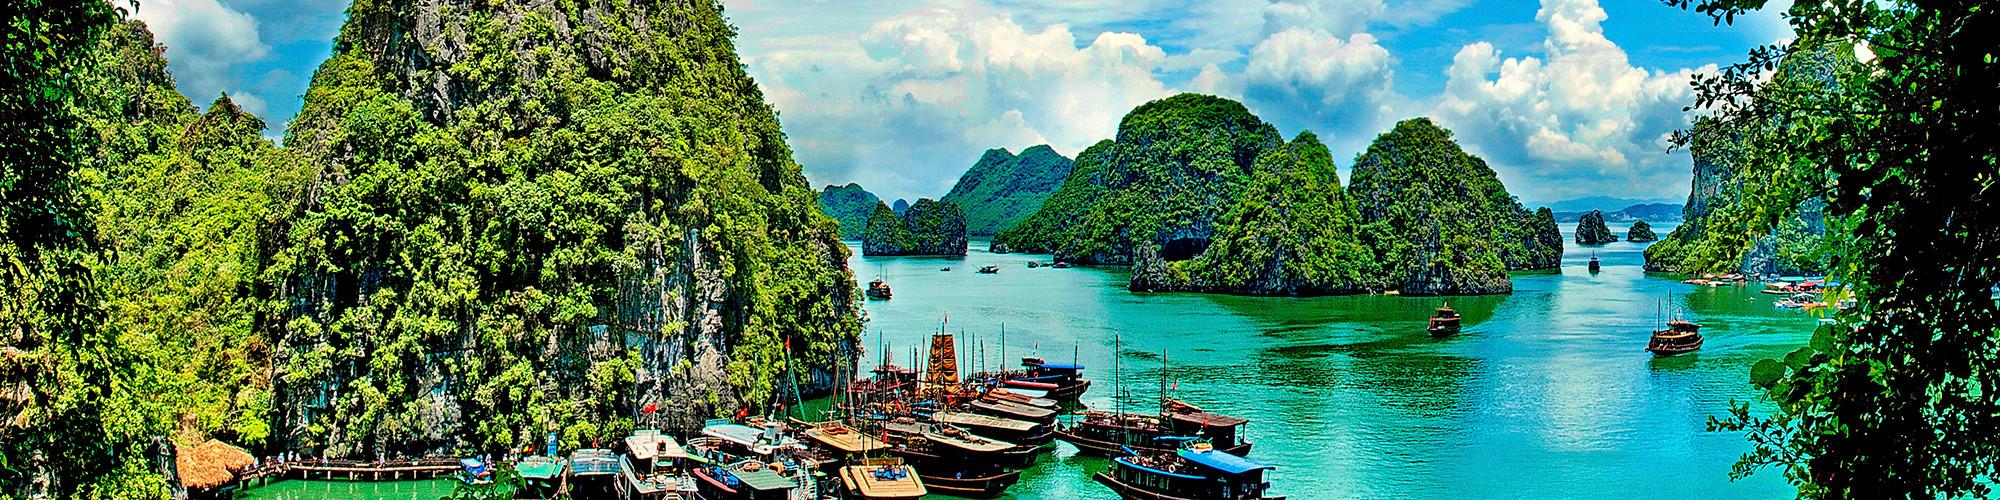 Vietnam Tours and Trips 2019/2020